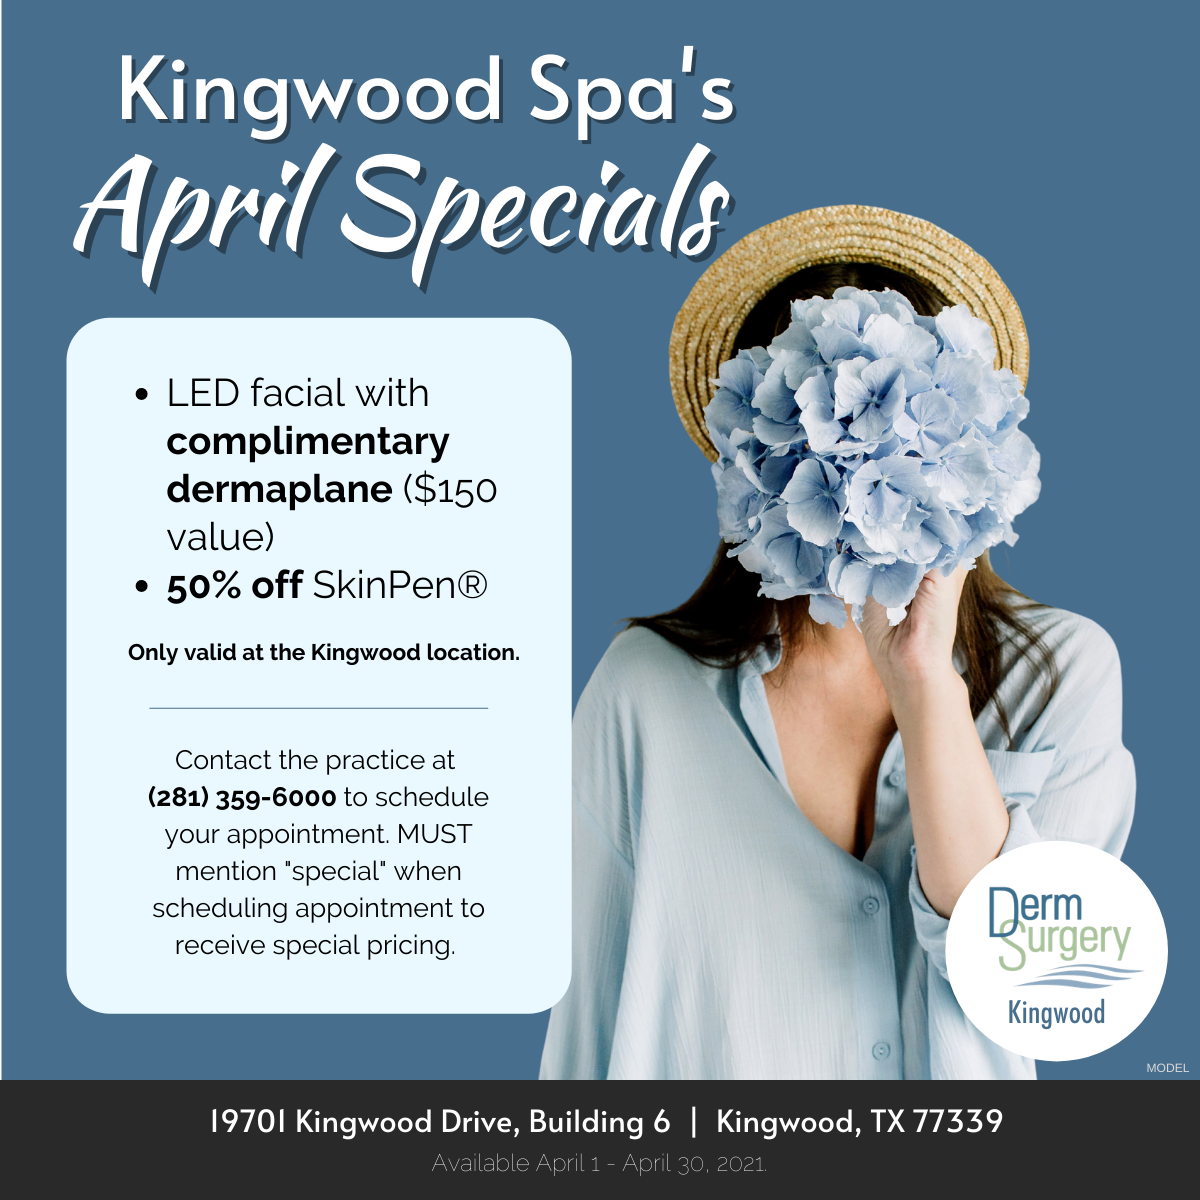 Kingwood Spa's April Specials